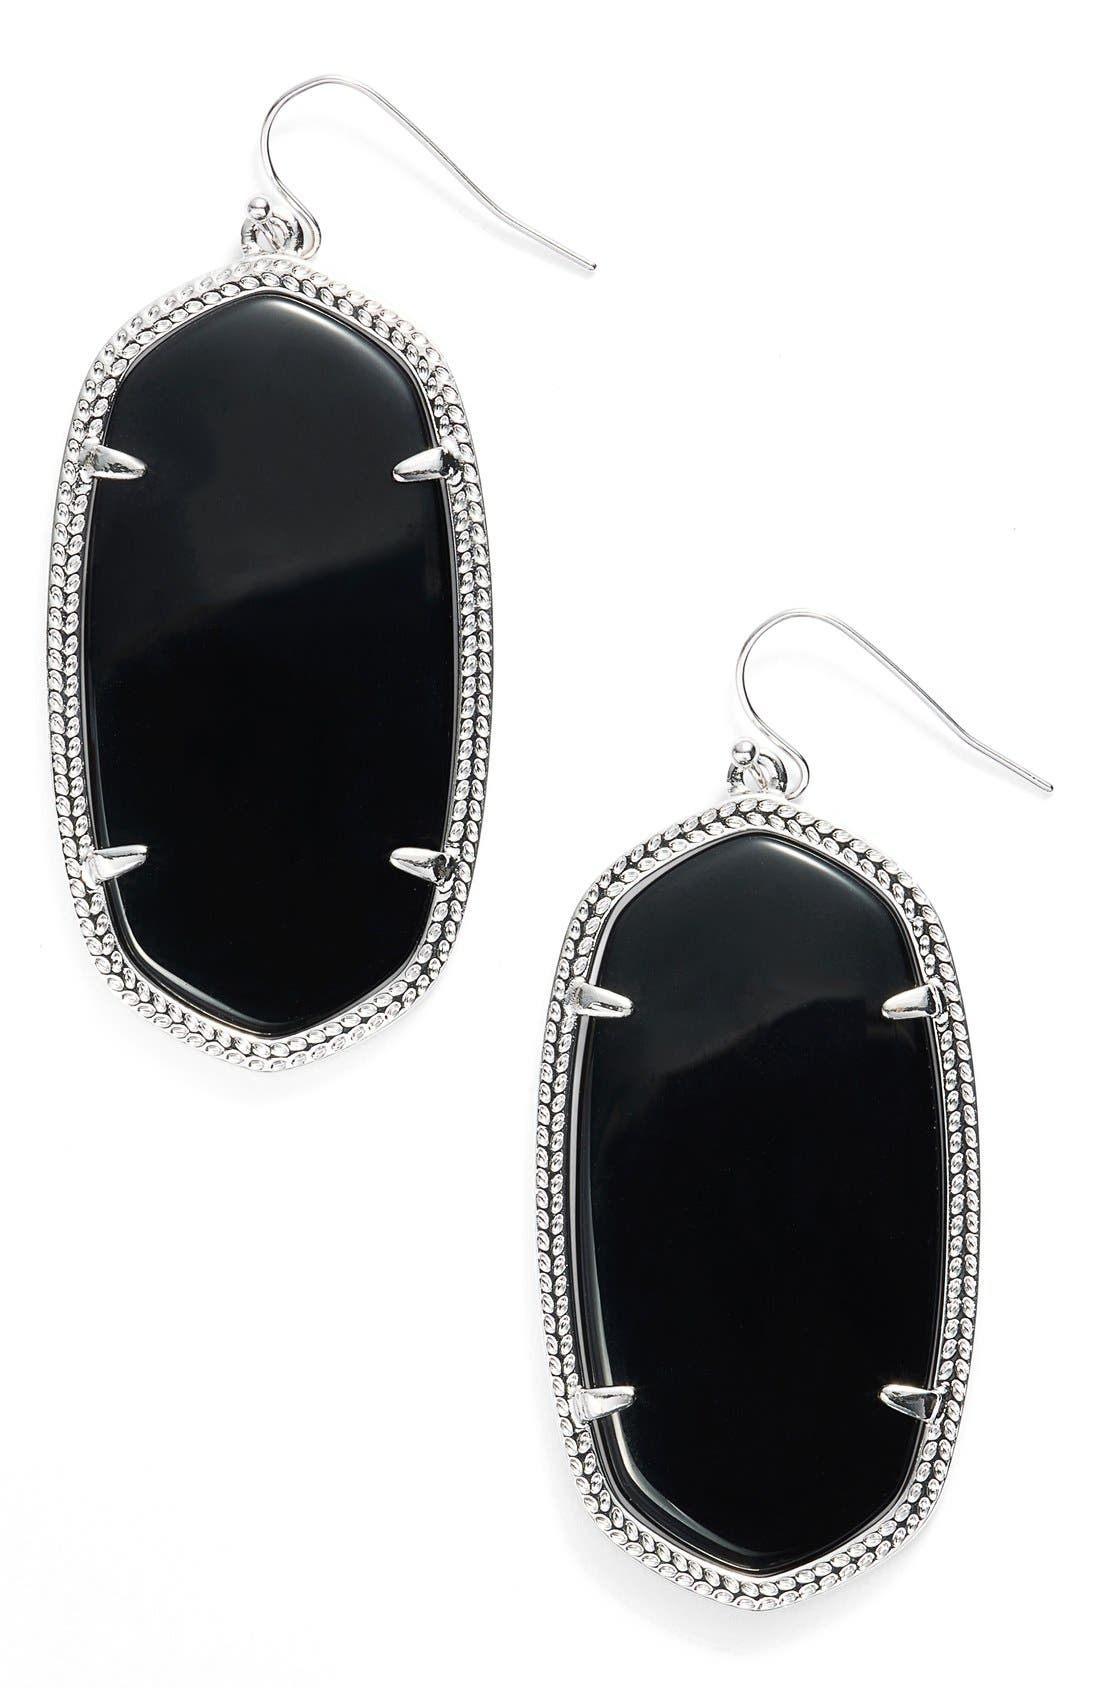 Danielle - Large Oval Statement Earrings,                             Main thumbnail 32, color,